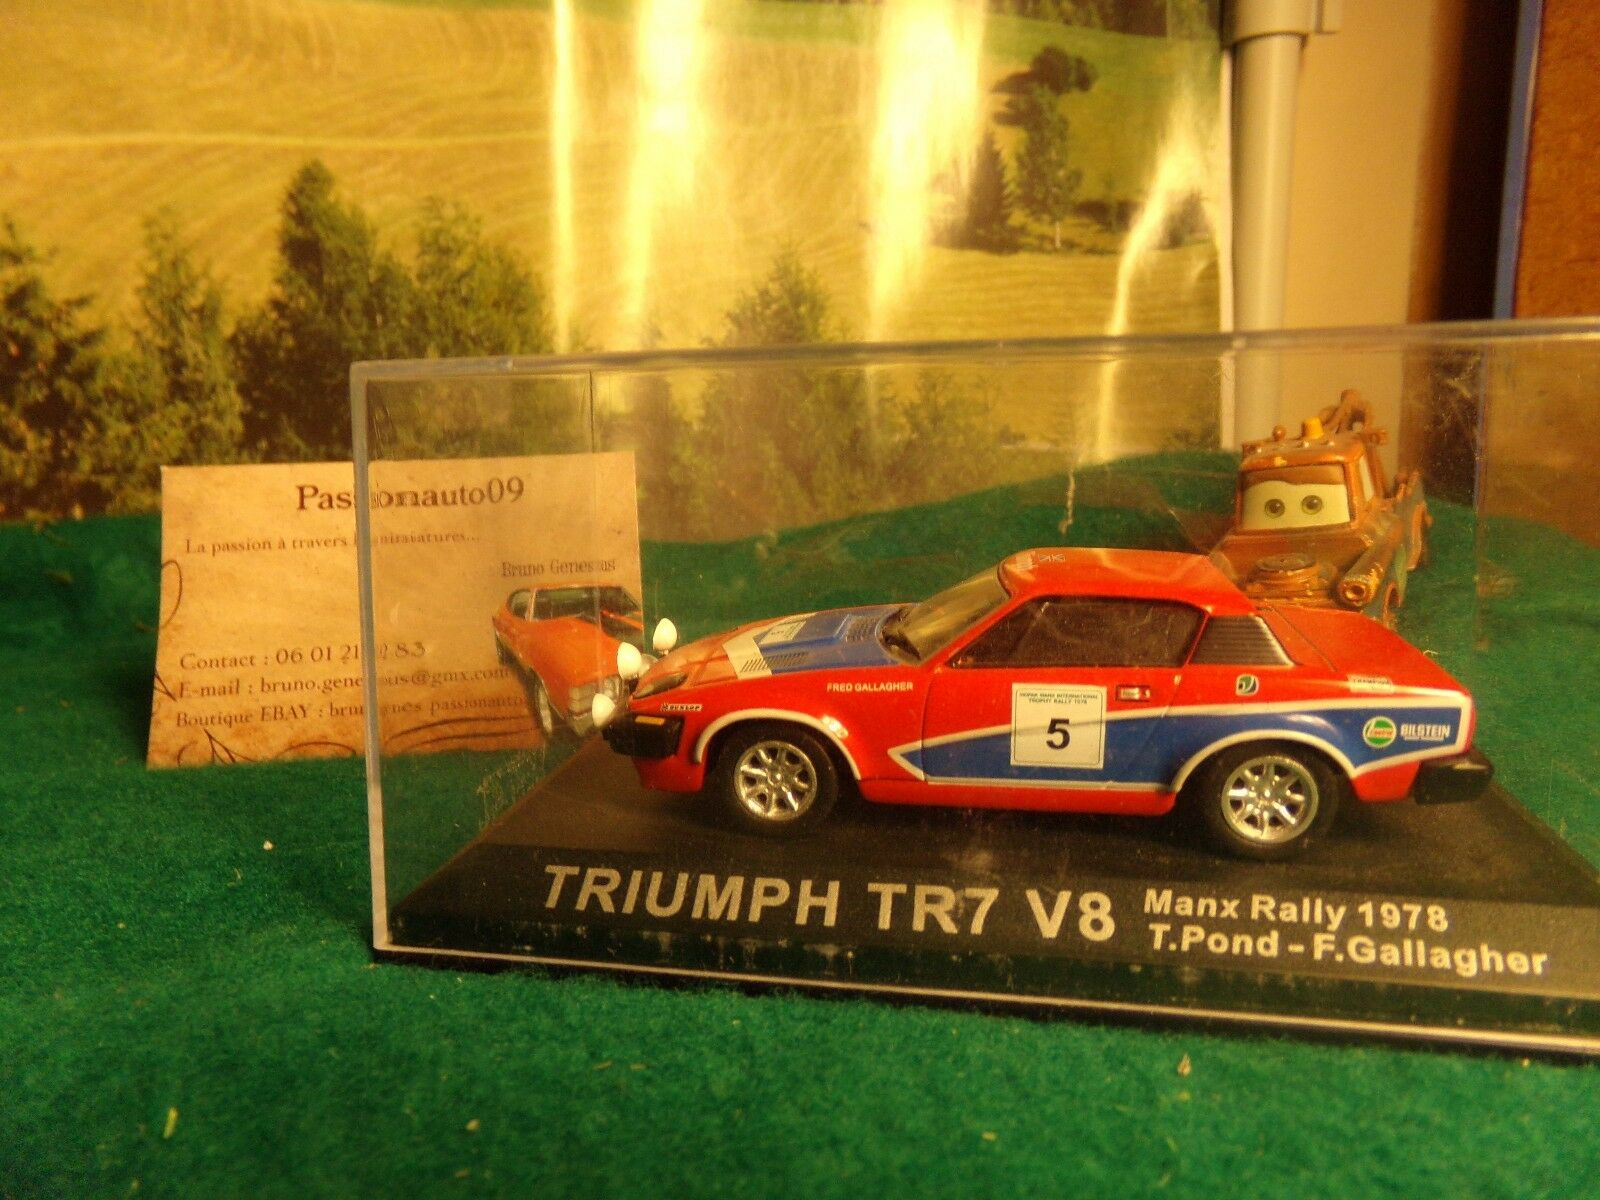 TRIUMPH TR7 V8 RALLY MANX 78 POND GALLAGIER car miniature 1 43 collection